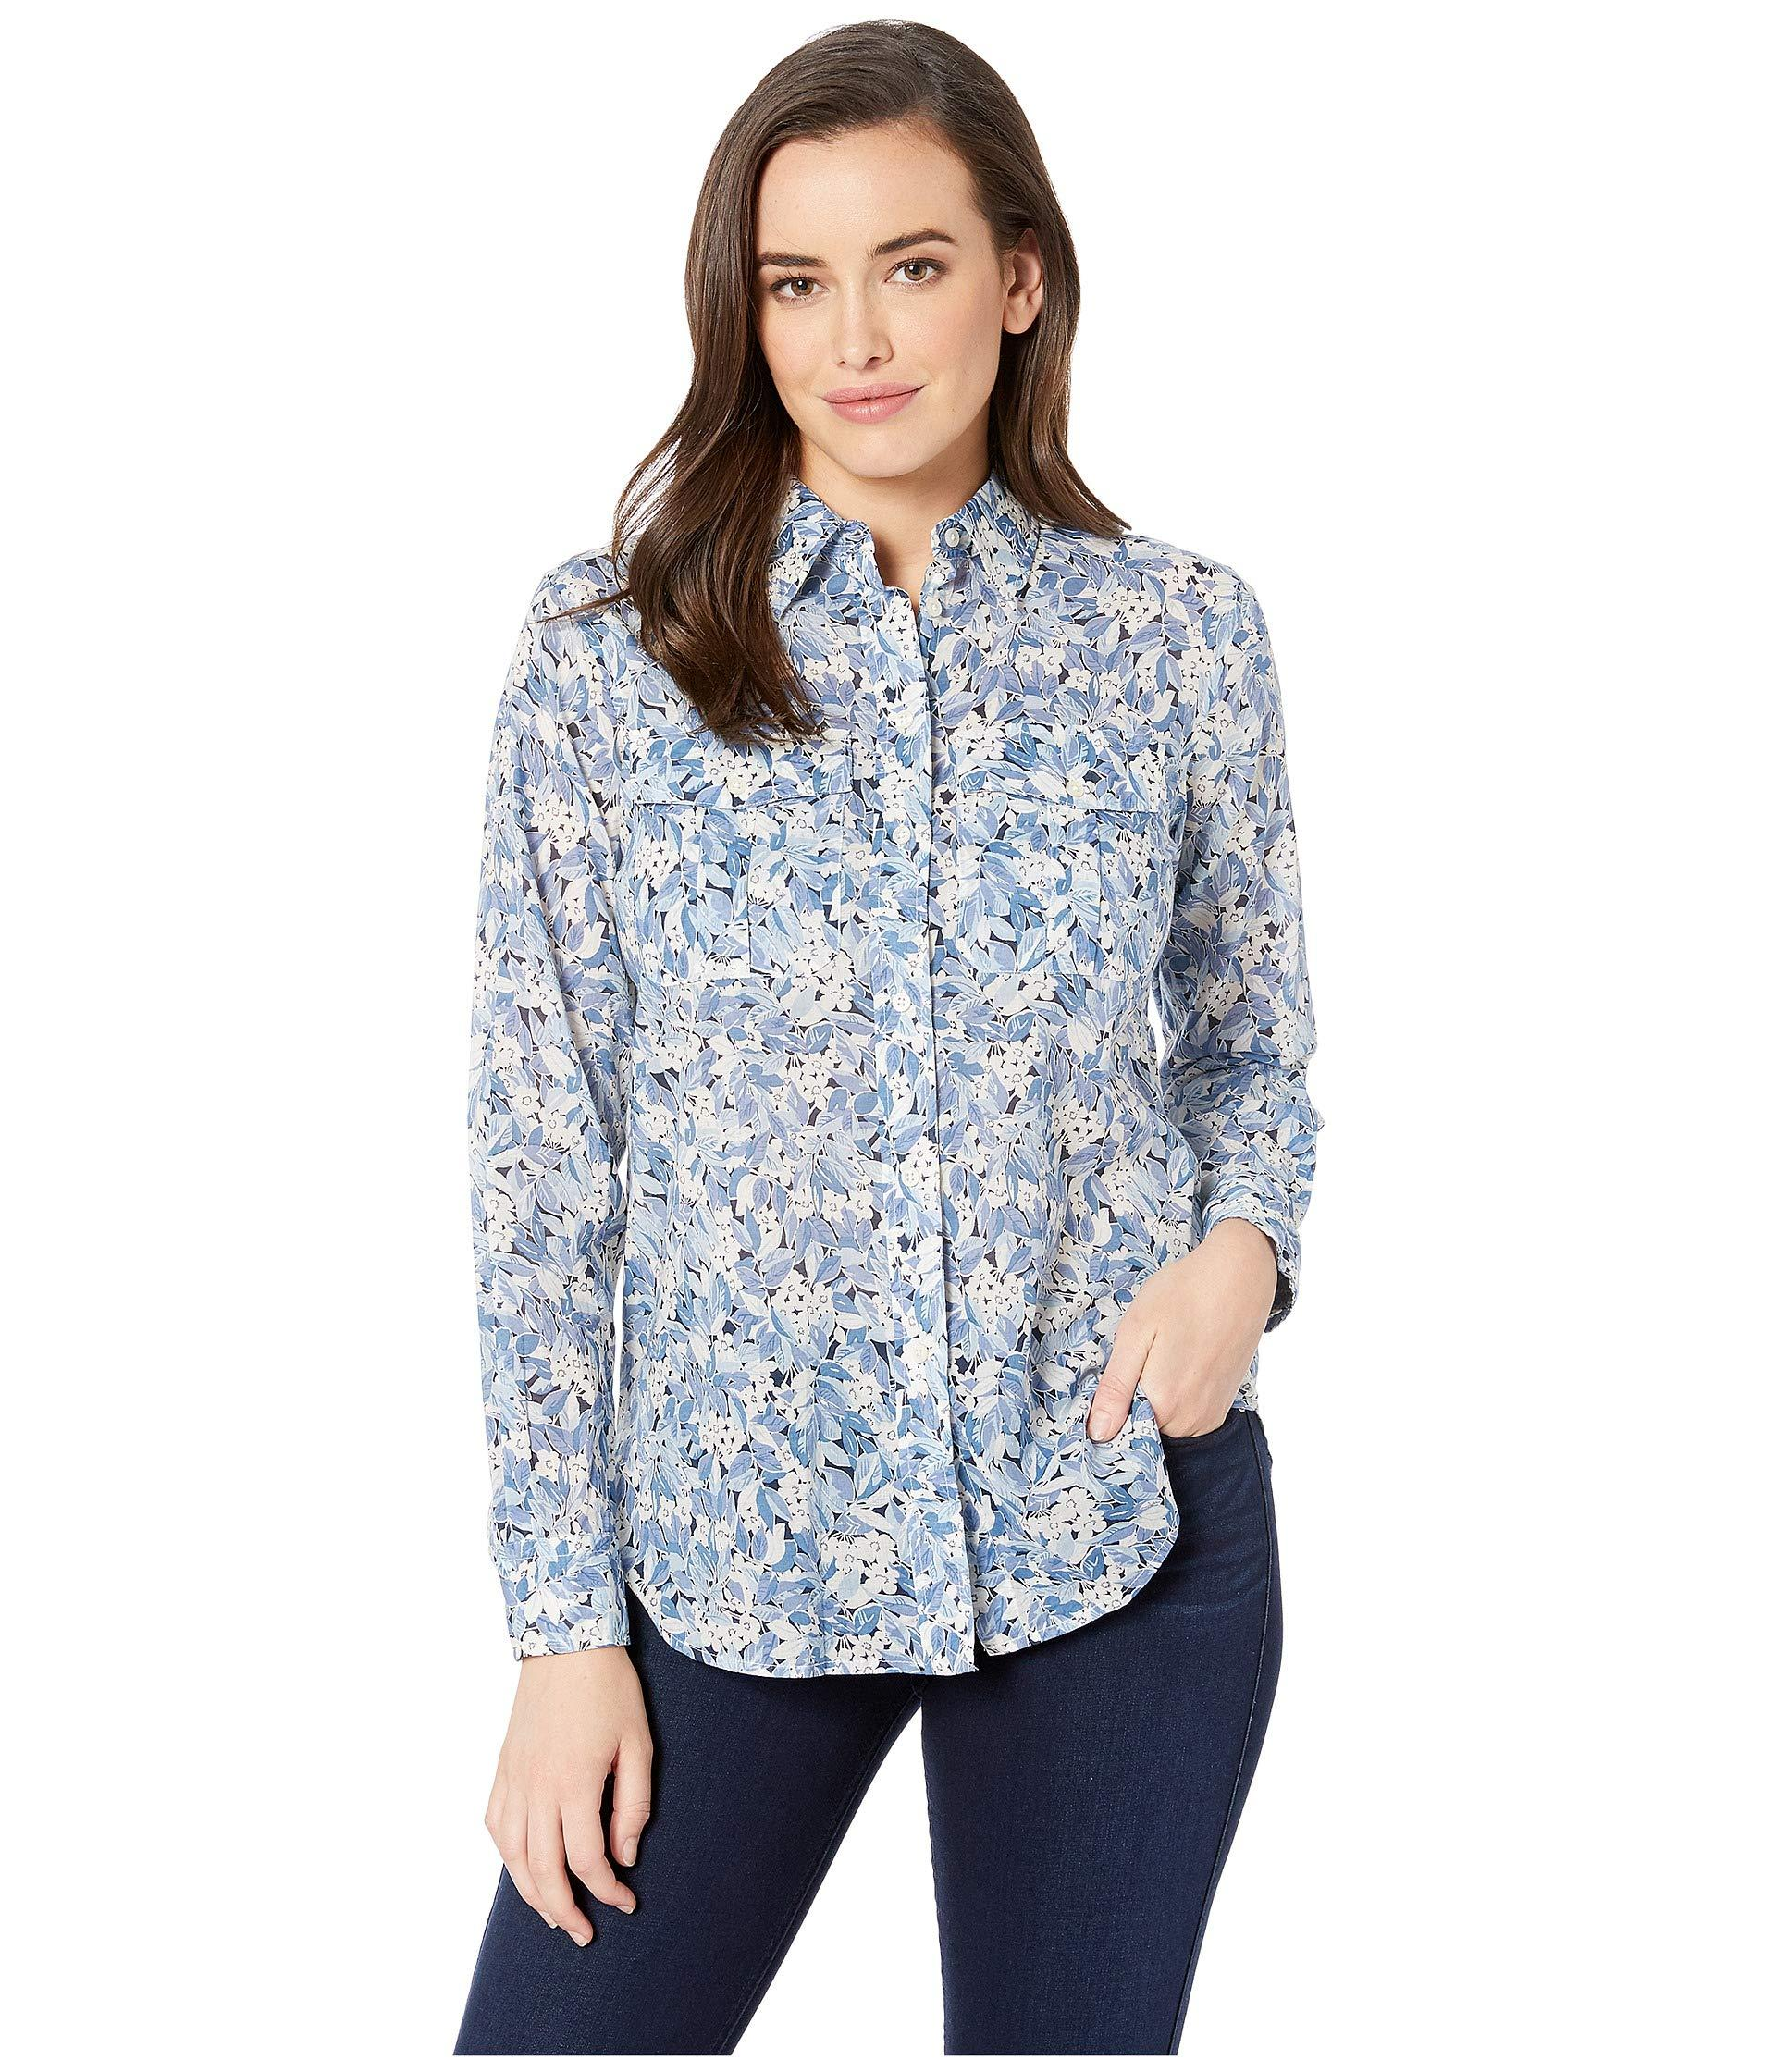 f8297a8ae0006 Lyst - Lauren by Ralph Lauren Plus Size Floral Cotton Voile Shirt ...